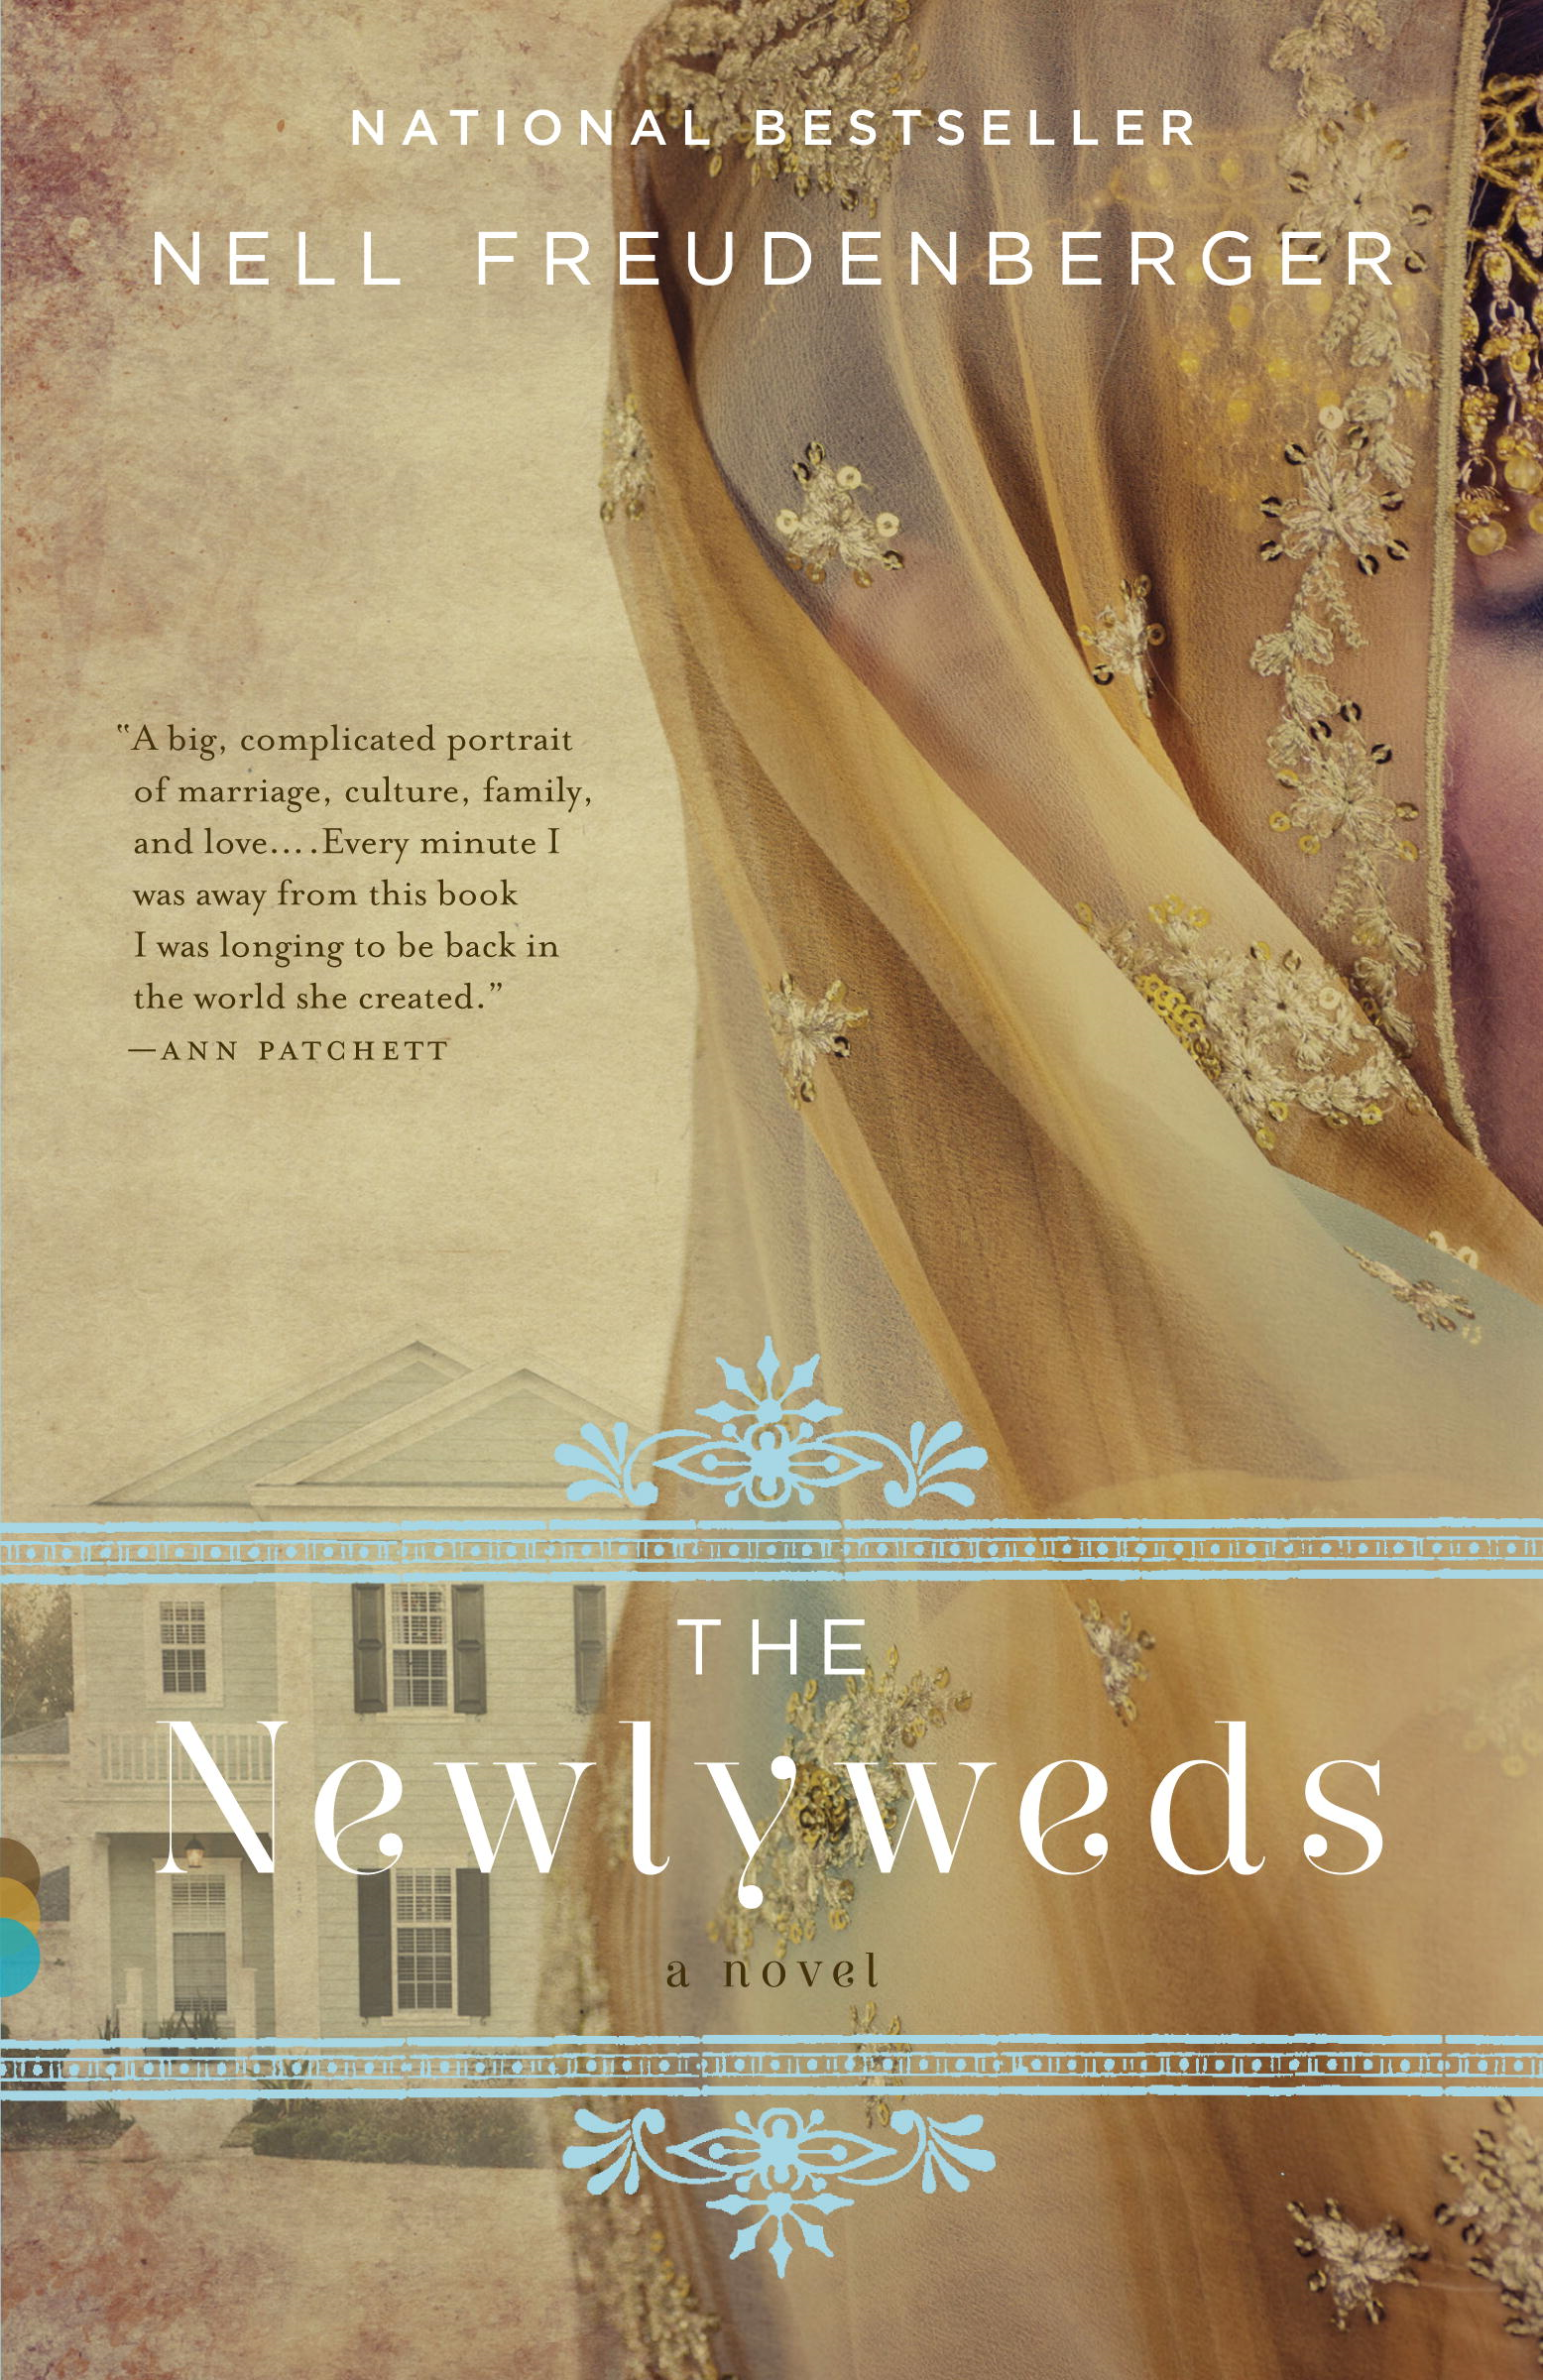 The Newlyweds By: Nell Freudenberger